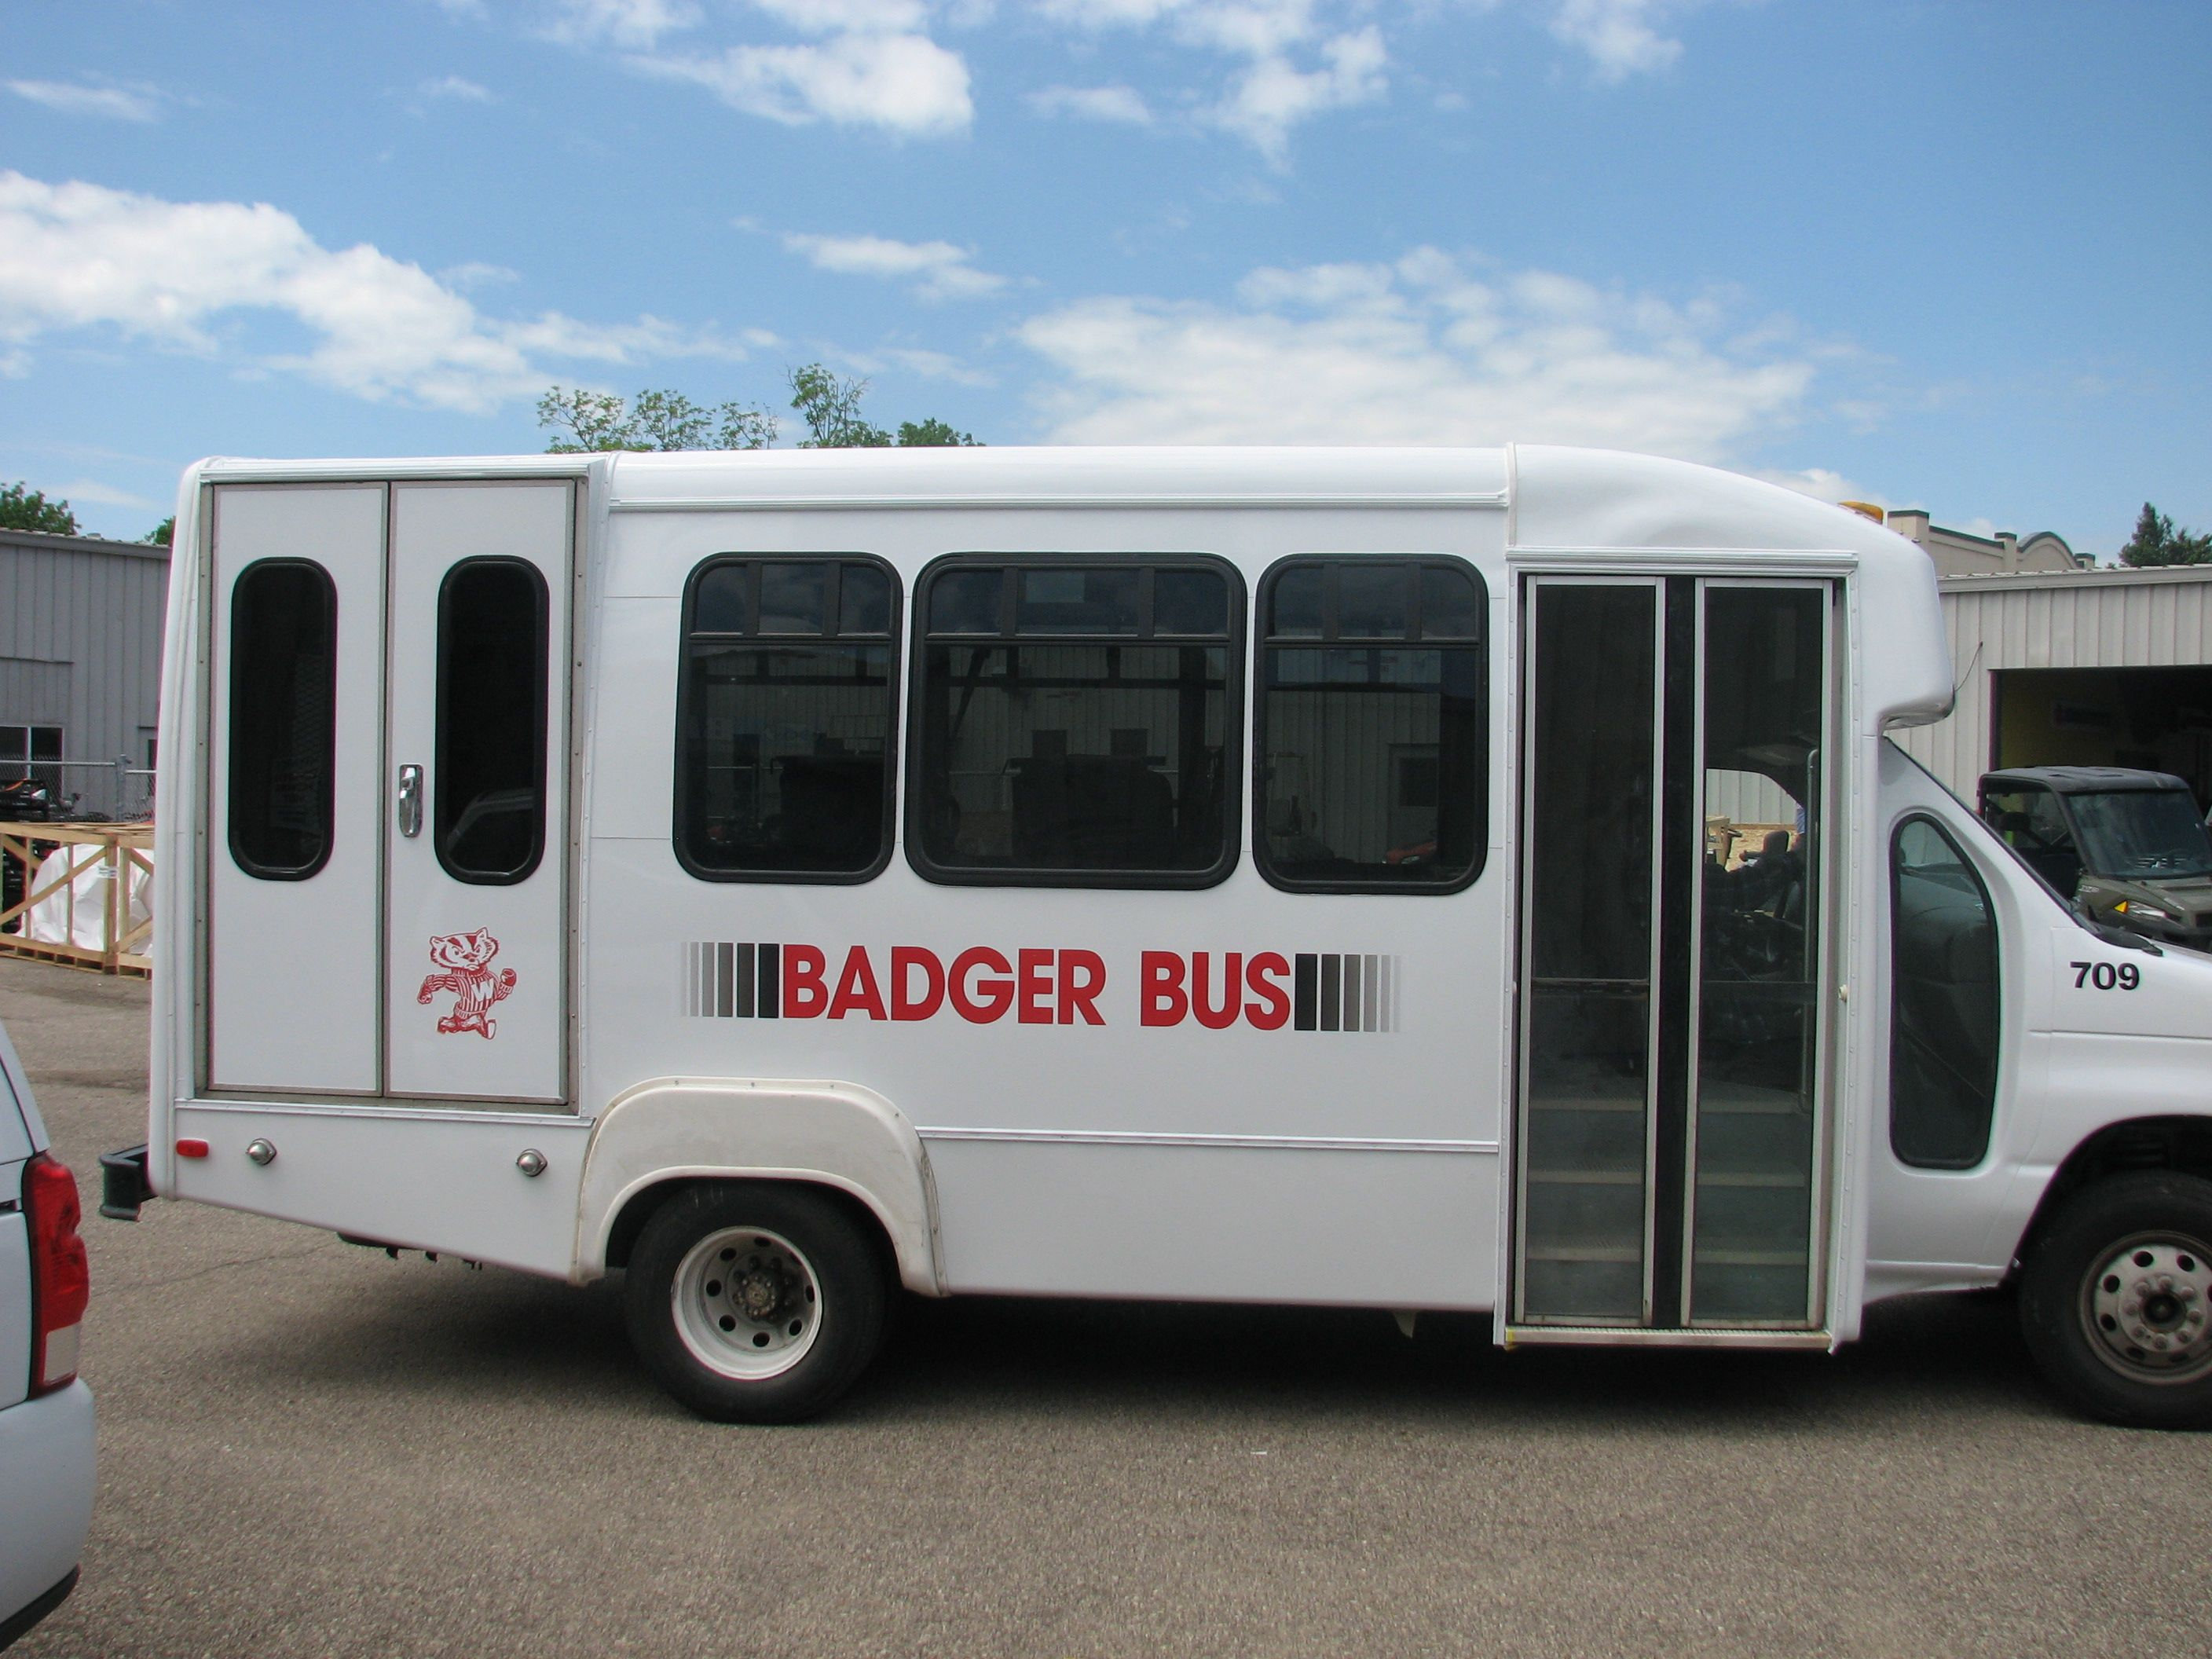 badger bus graphics done by monarch media designs. monarchworld